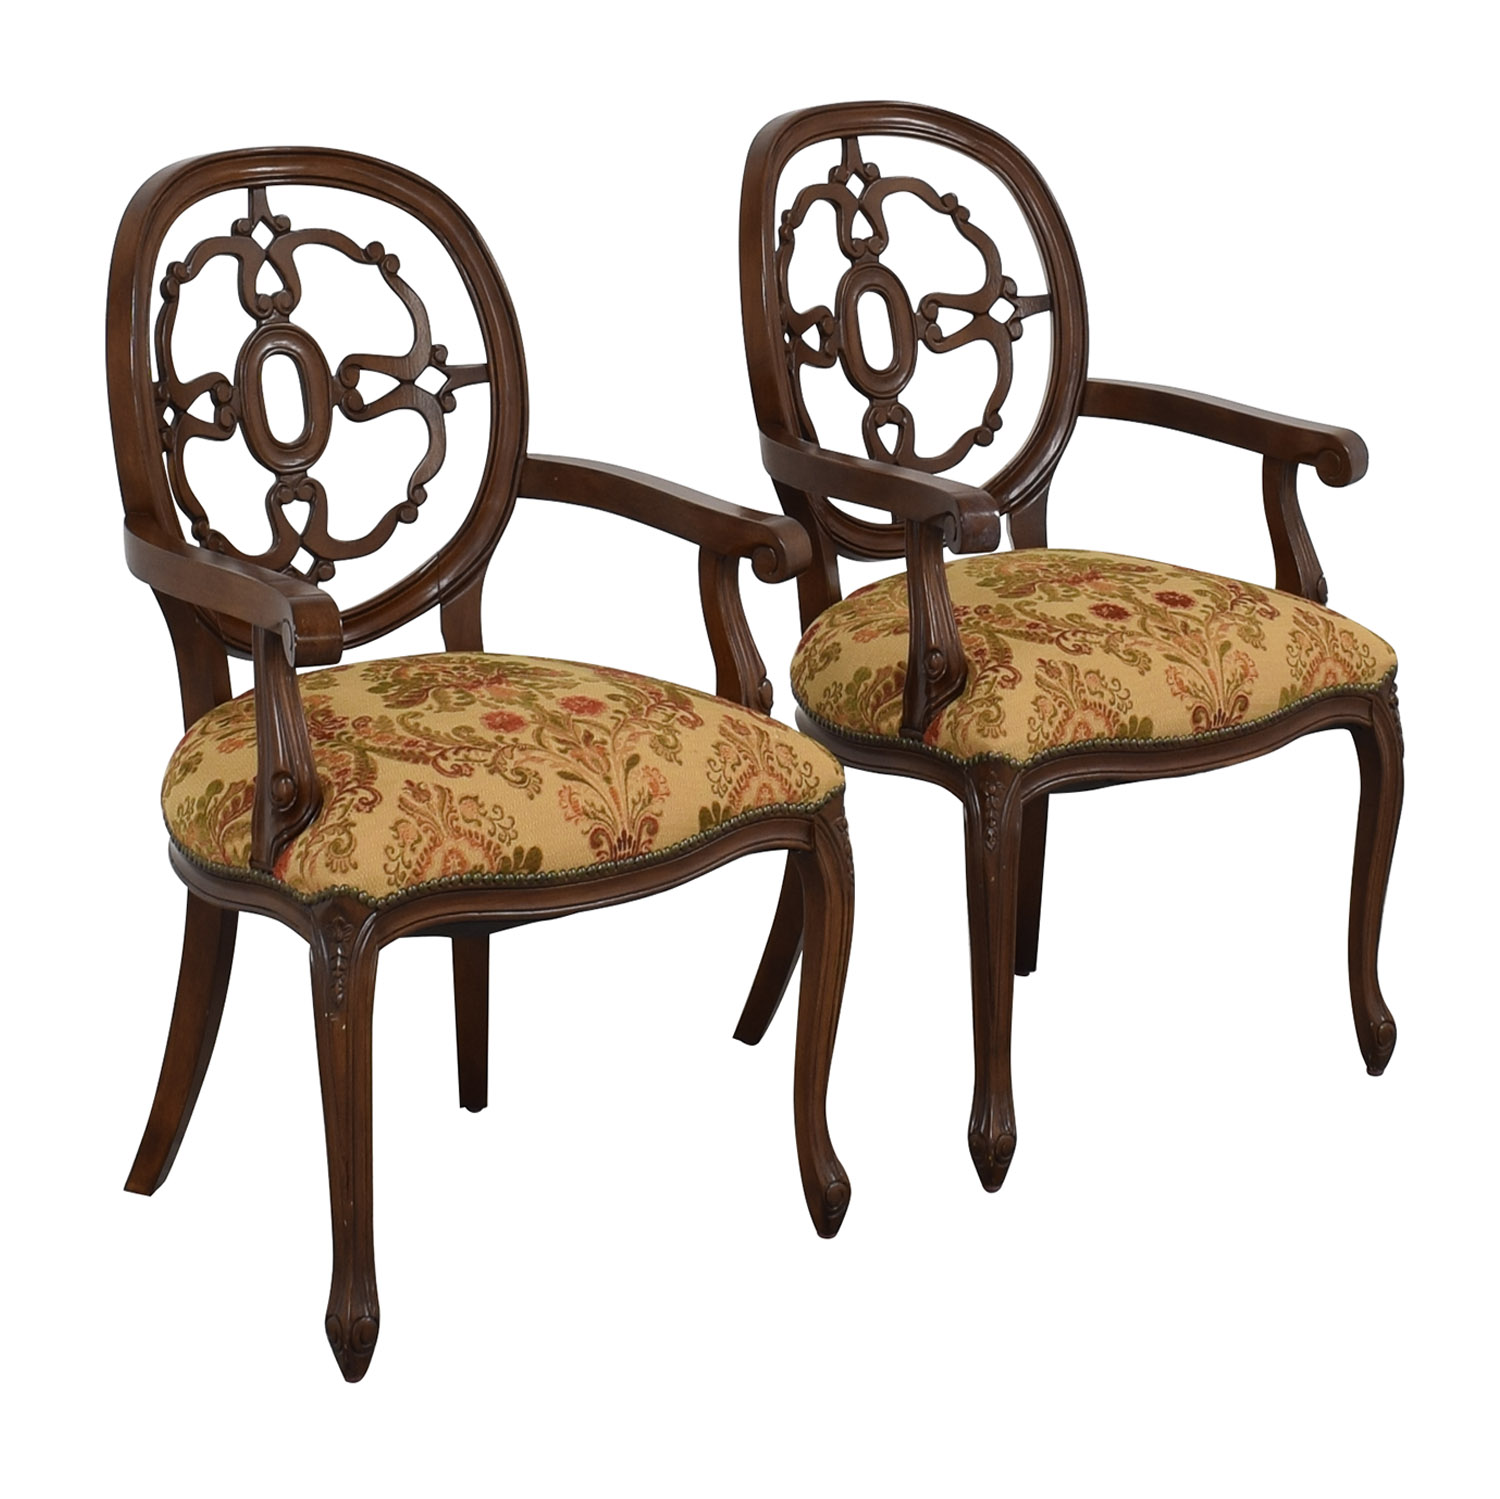 Floral Upholstered Armchairs with Antique Finish sale